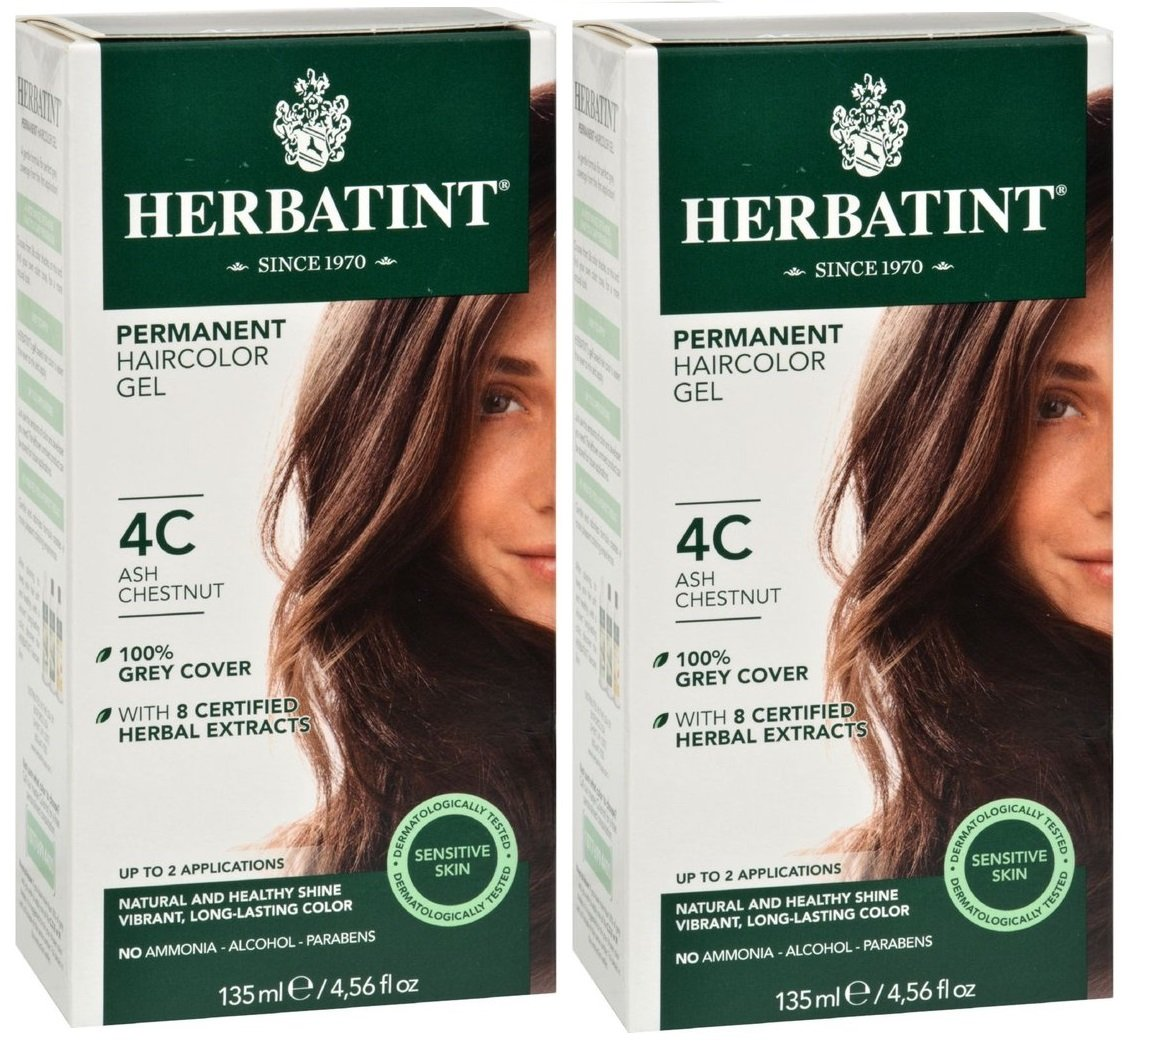 Herbatint 4C Ash Chestnut Permanent Haircolor (Pack of 2) Alcohol and Ammonia Free, 4.65fl oz Each by Herbatint